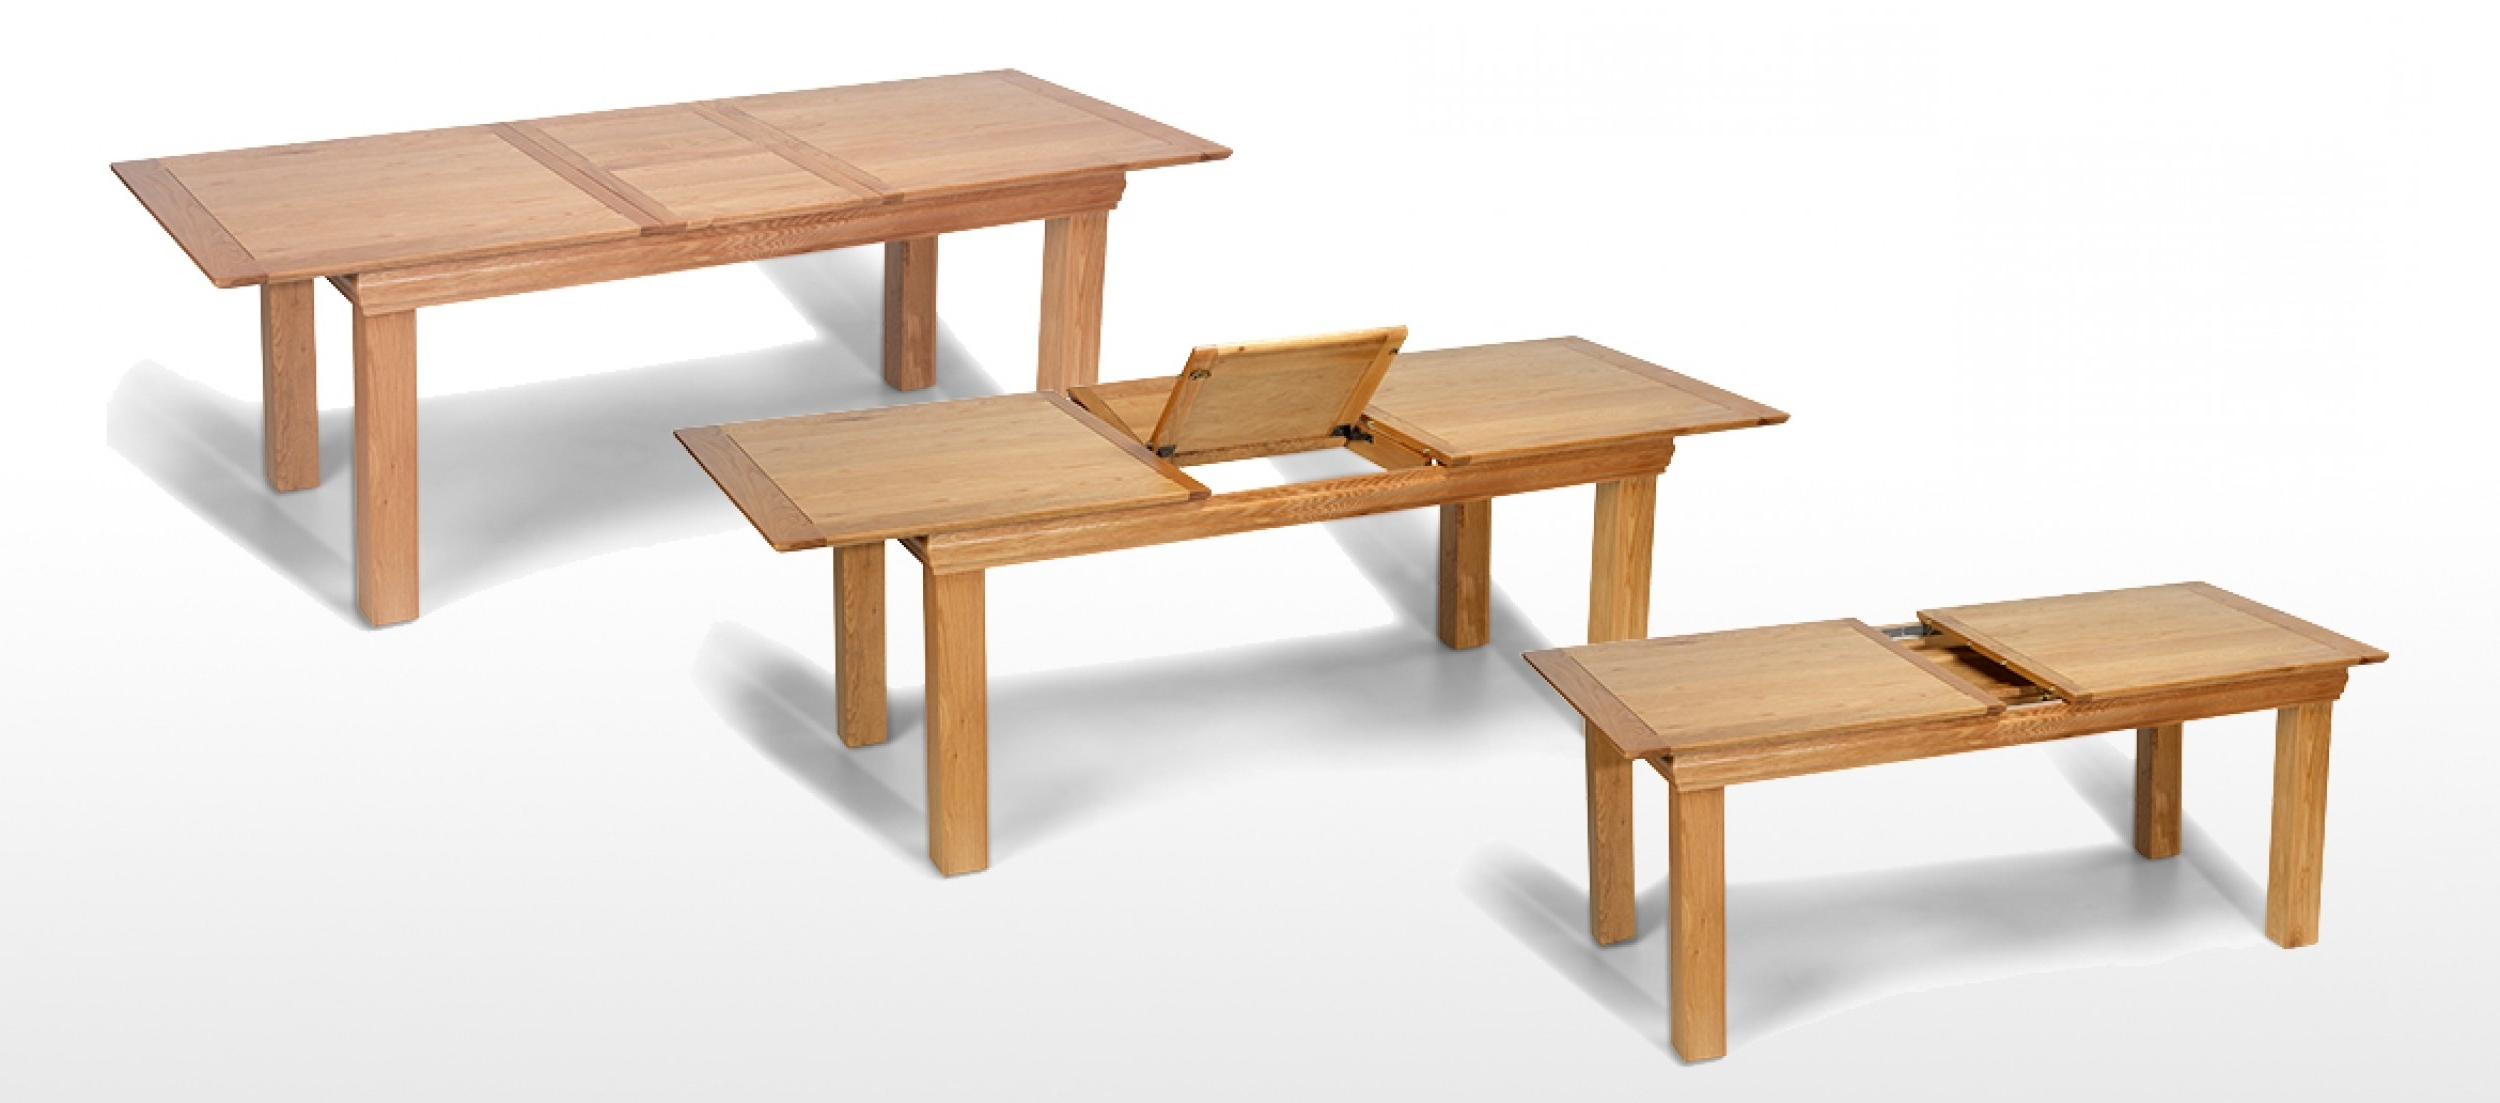 Quercus Living for Newest Extending Dining Tables